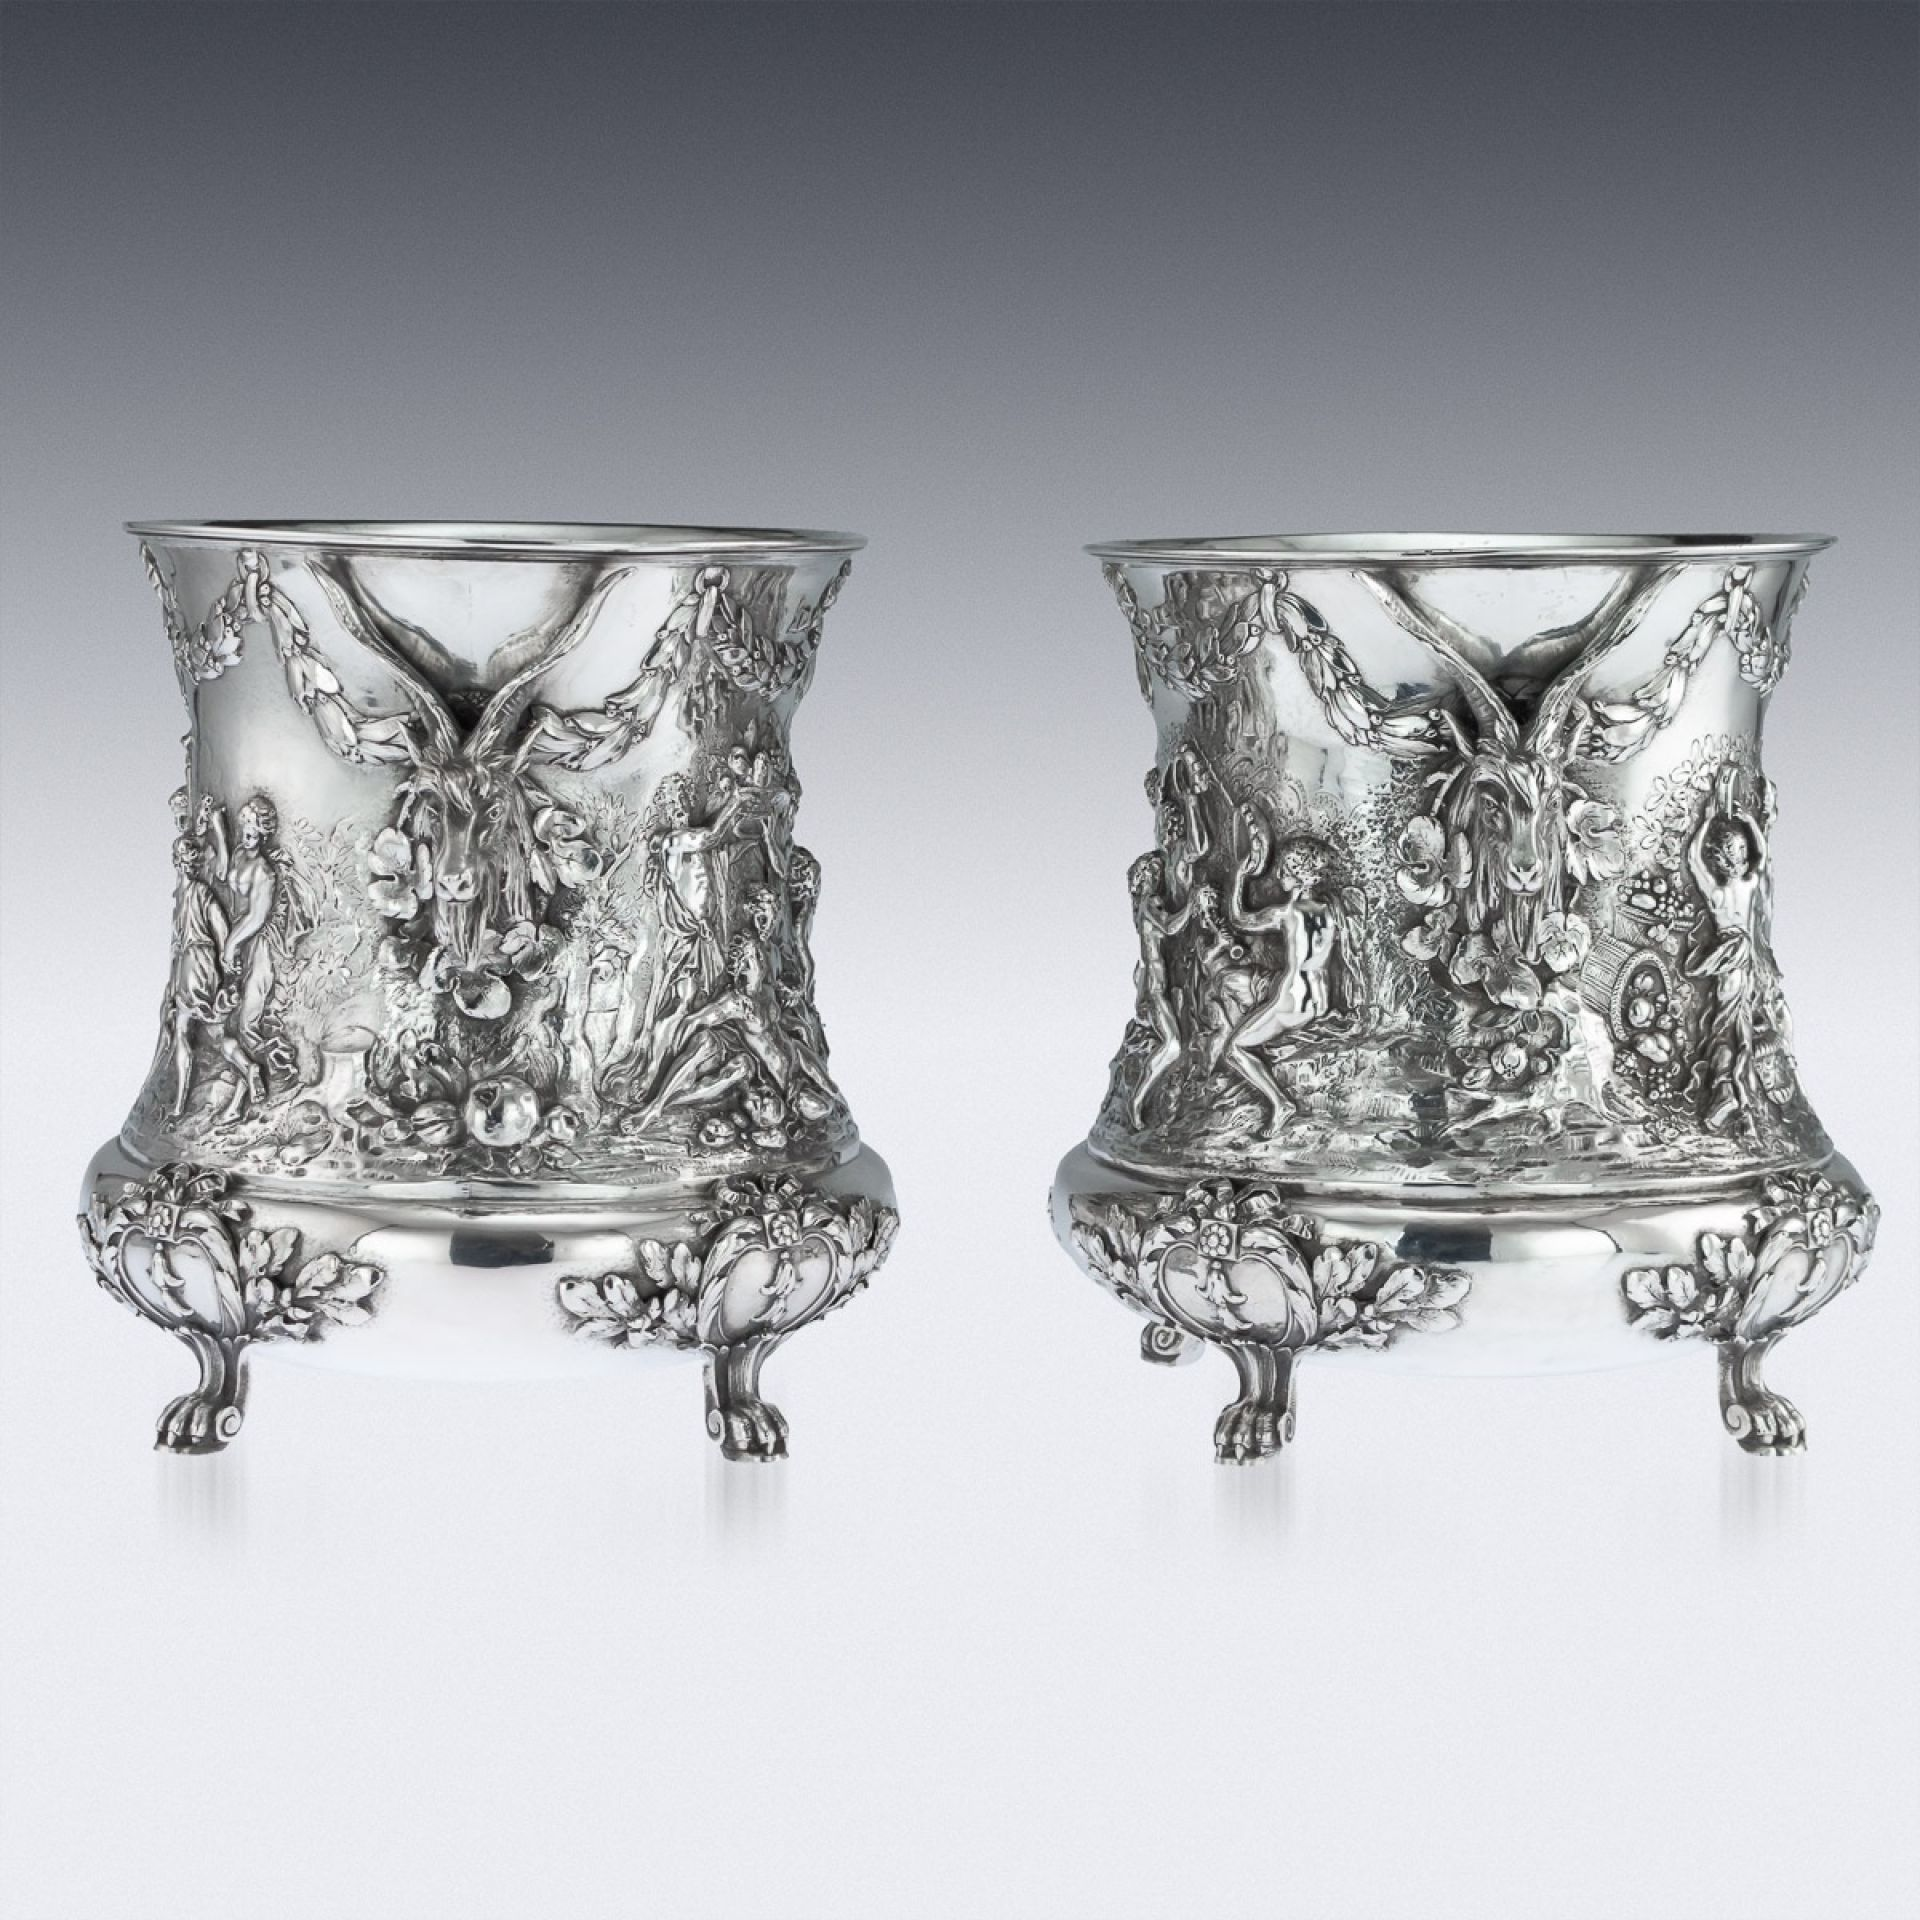 ANTIQUE 19thC GERMAN SOLID SILVER WINE COOLERS, GEORG ROTH, HANAU c.1890